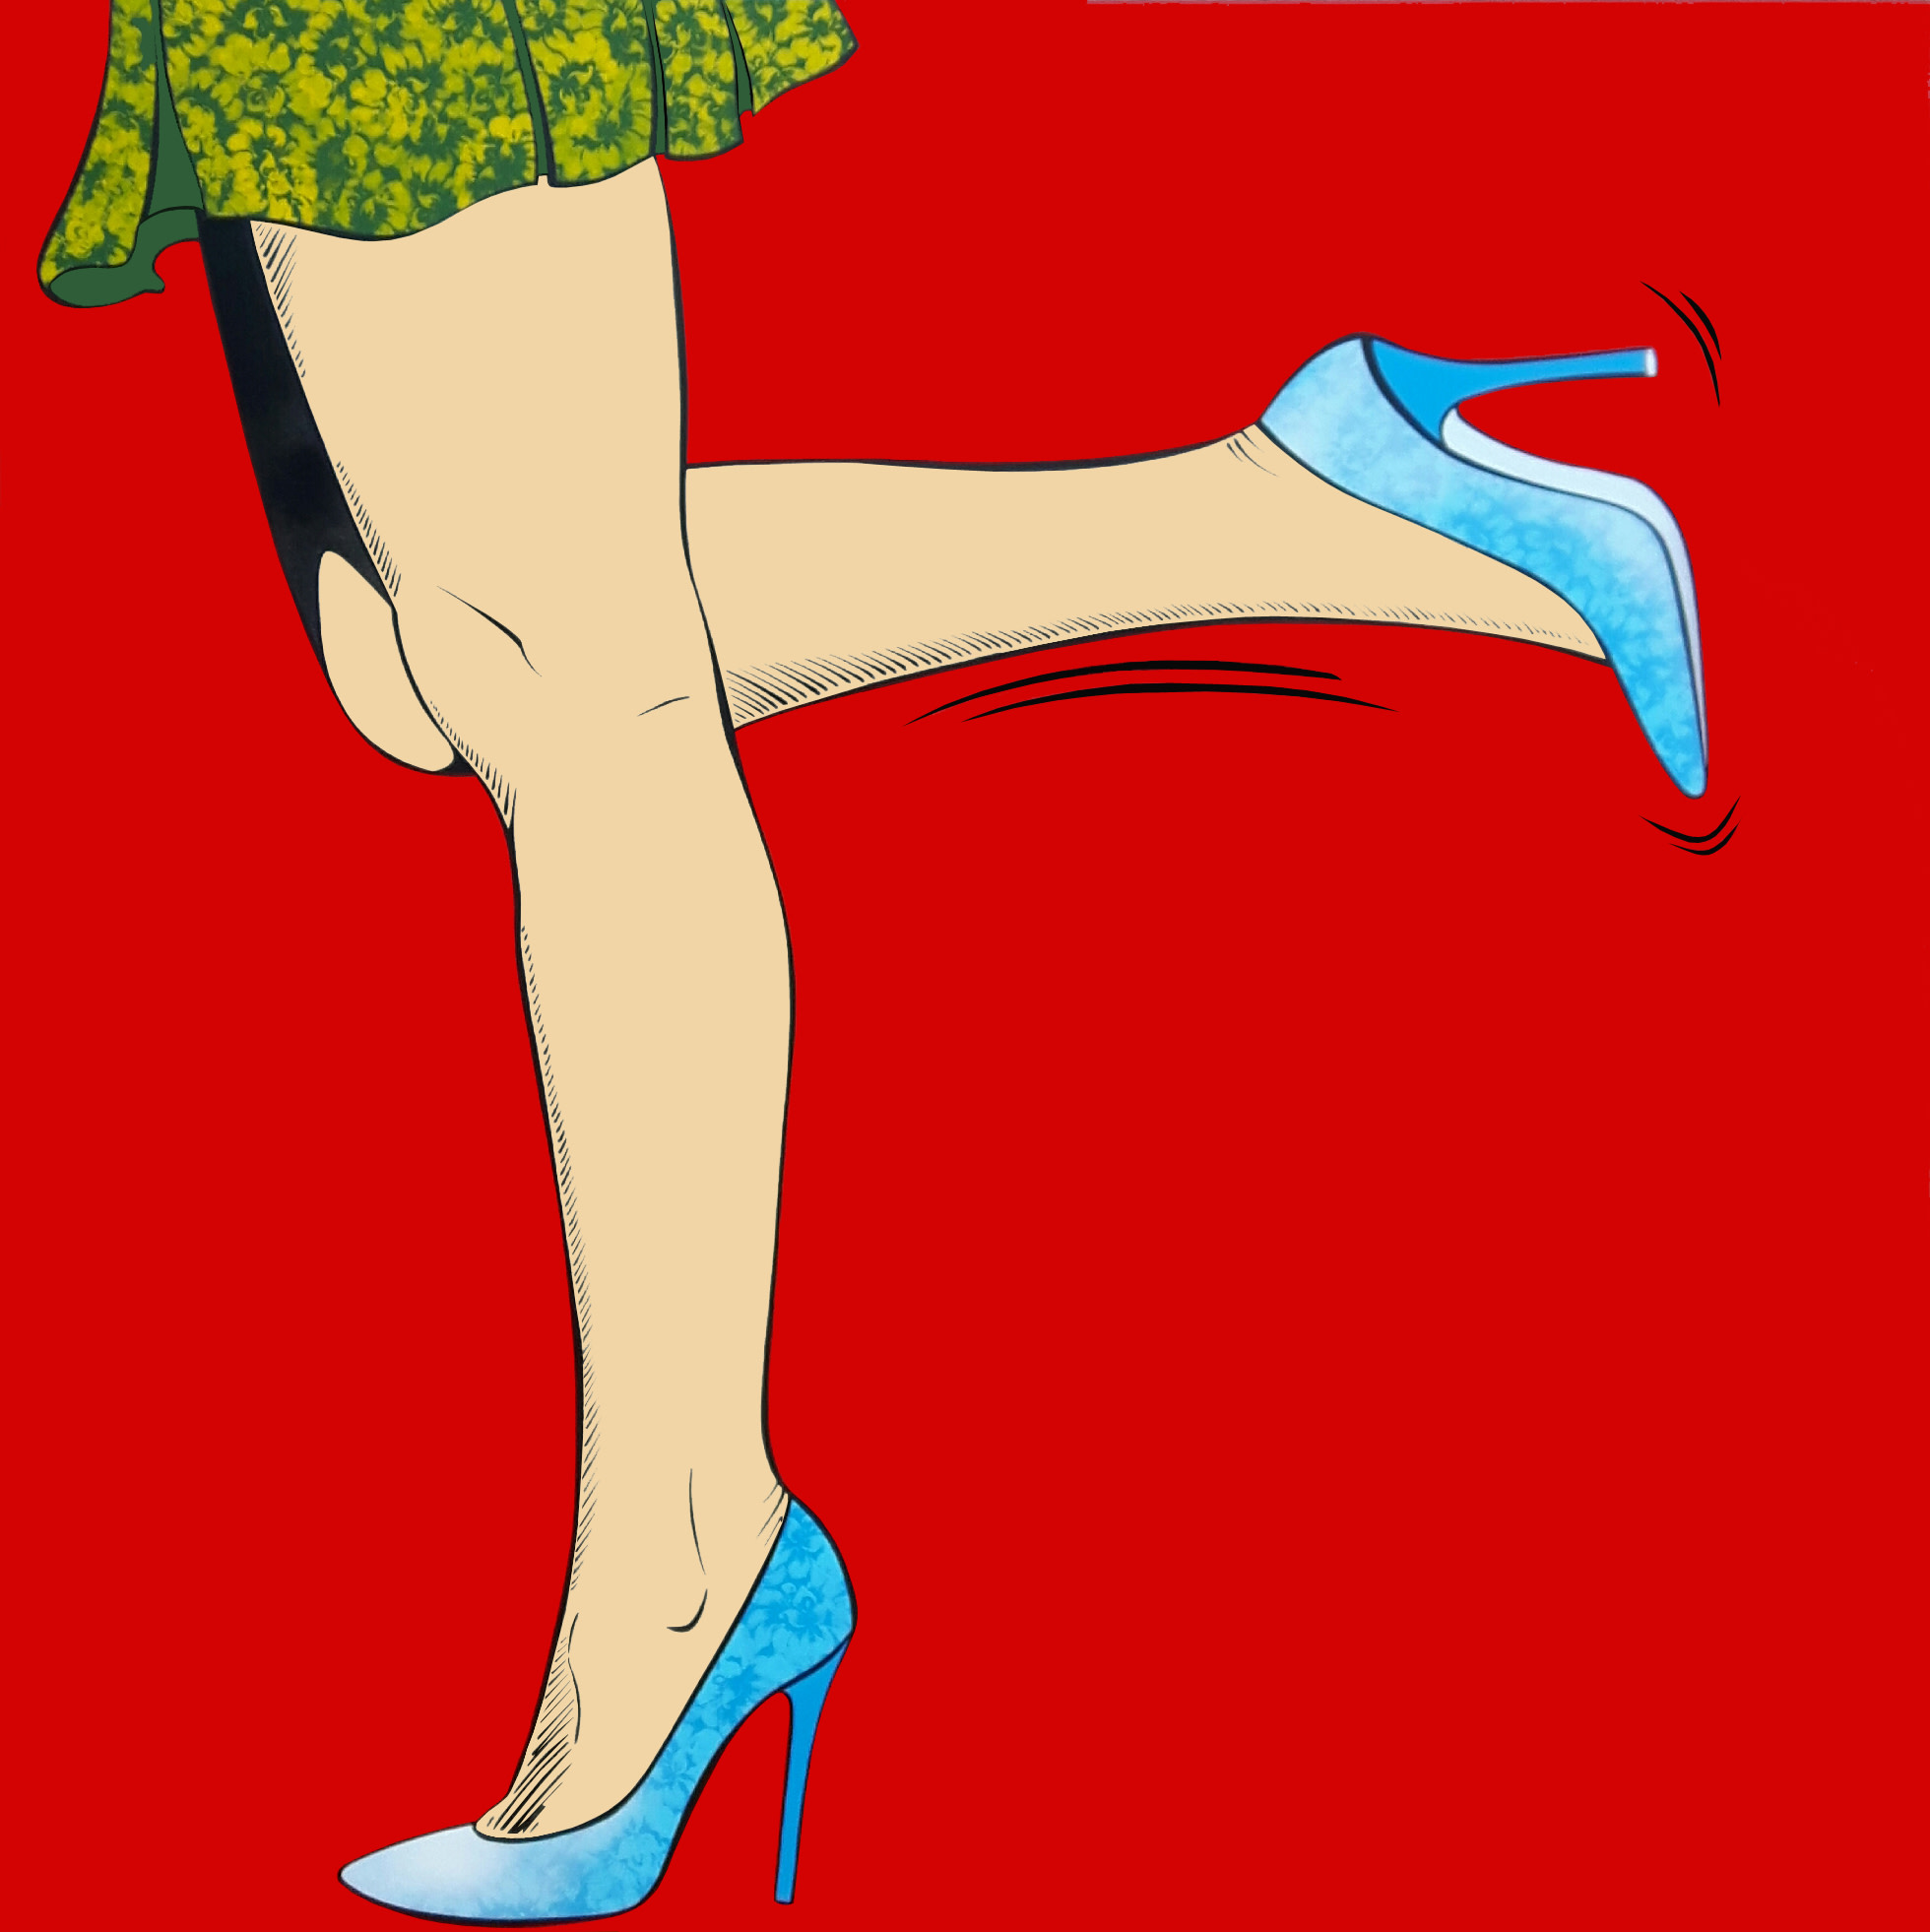 """<span class=""""link fancybox-details-link""""><a href=""""/exhibitions/43/works/artworks1828/"""">View Detail Page</a></span><div class=""""artist""""><strong>Deborah Azzopardi</strong></div><div class=""""title""""><em>Physical Attraction...</em>, 2017</div><div class=""""medium"""">Acrylic on Board</div><div class=""""dimensions"""">107 x 107 cm<br>42 1/8 x 42 1/8 in.</div>"""